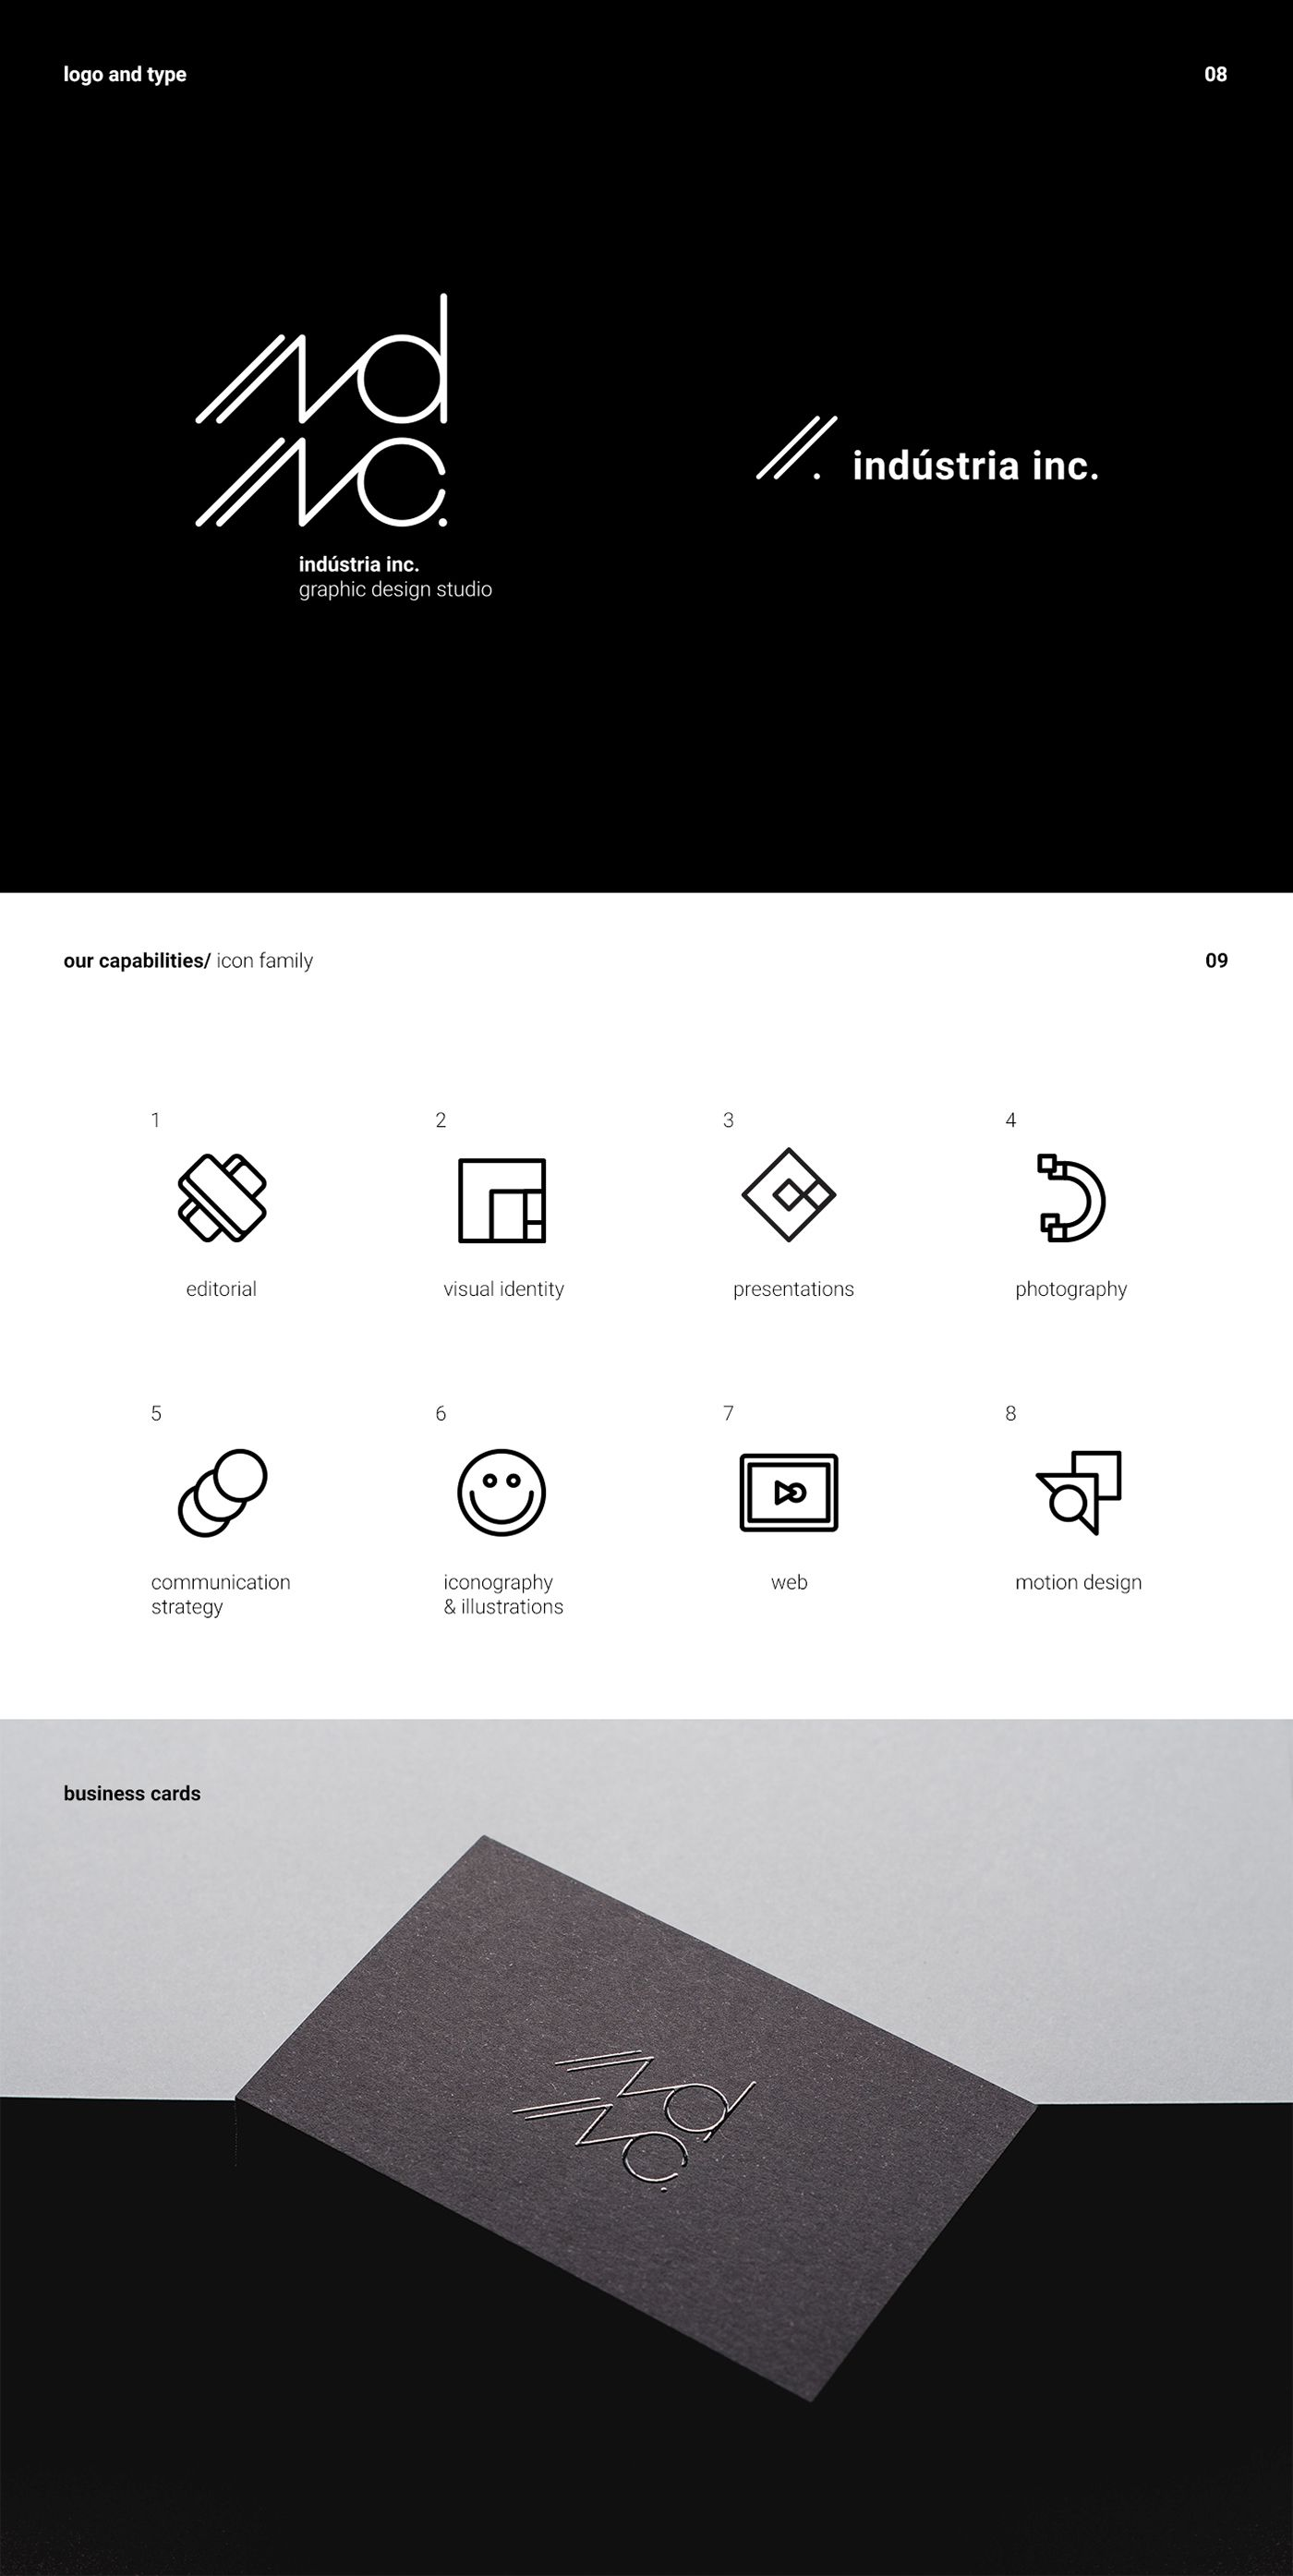 ind inc self identity on Behance ind